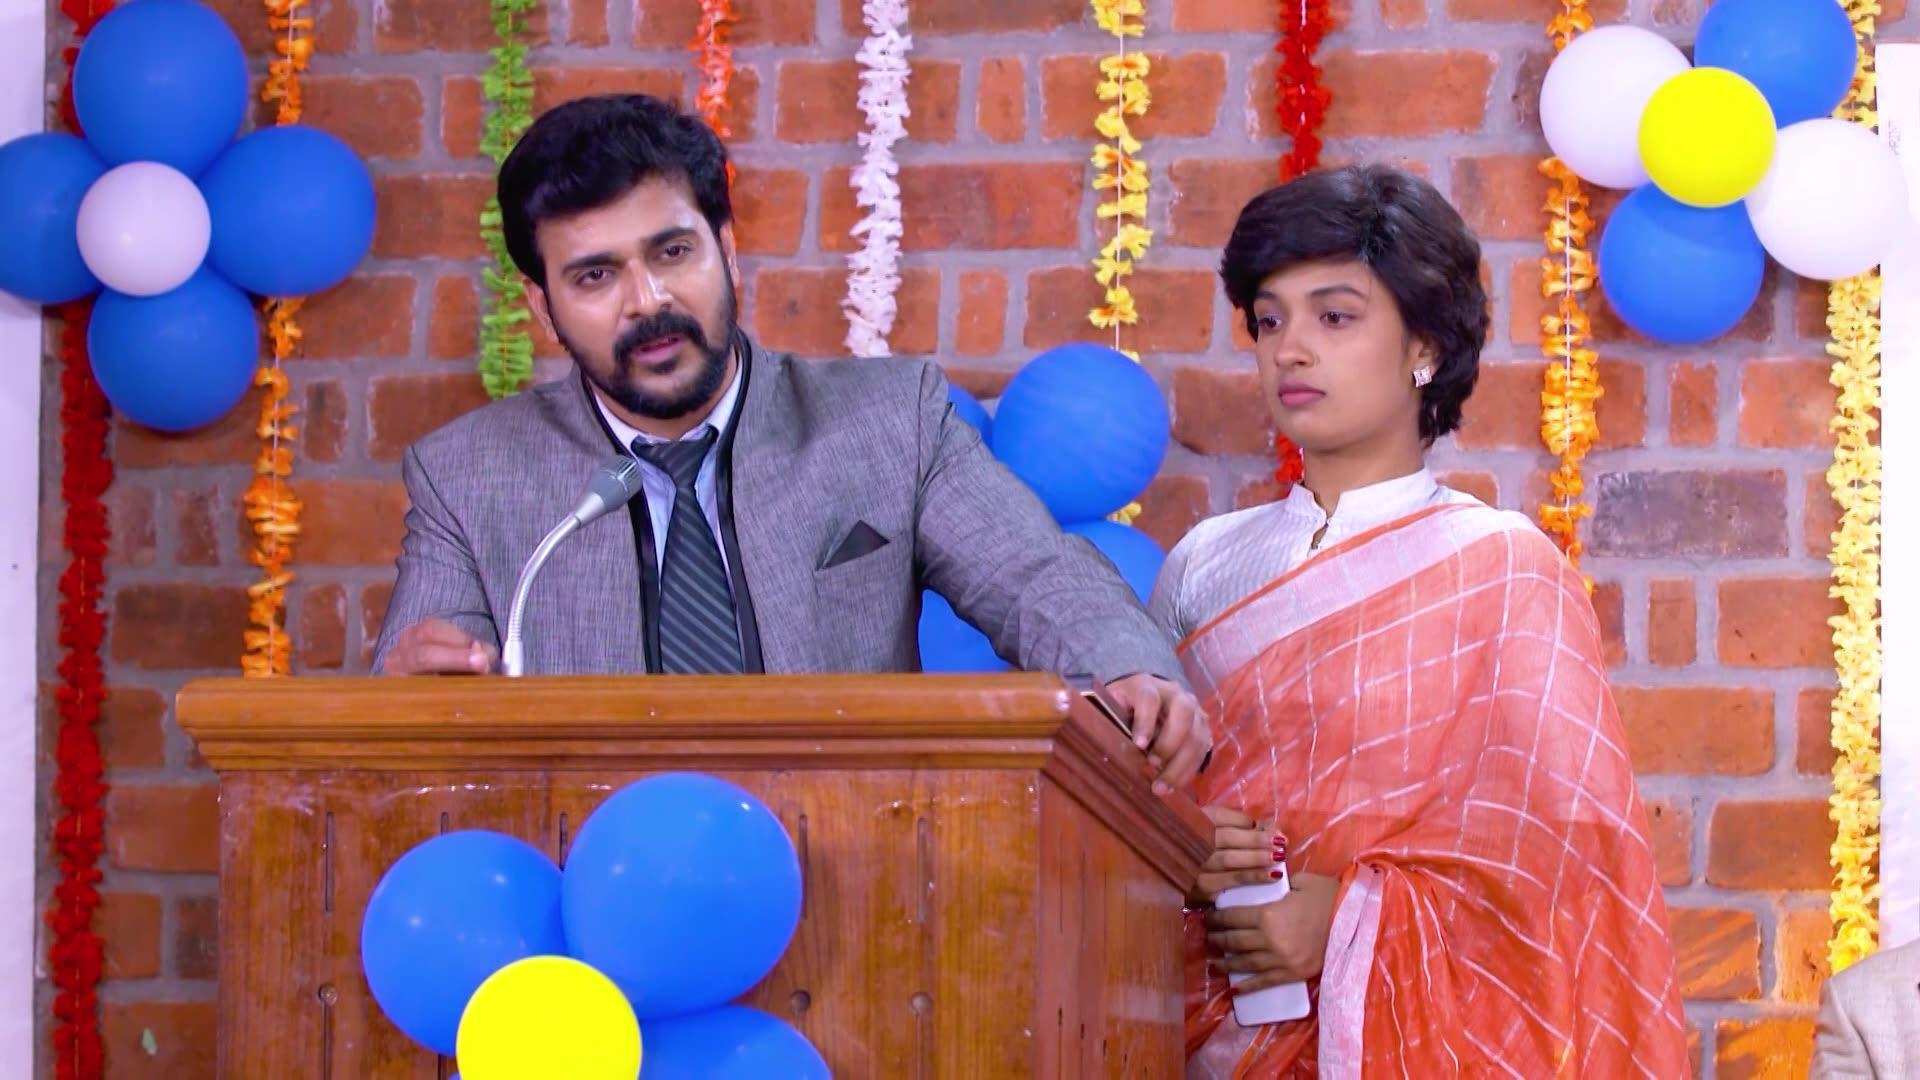 Sudhi and sathya